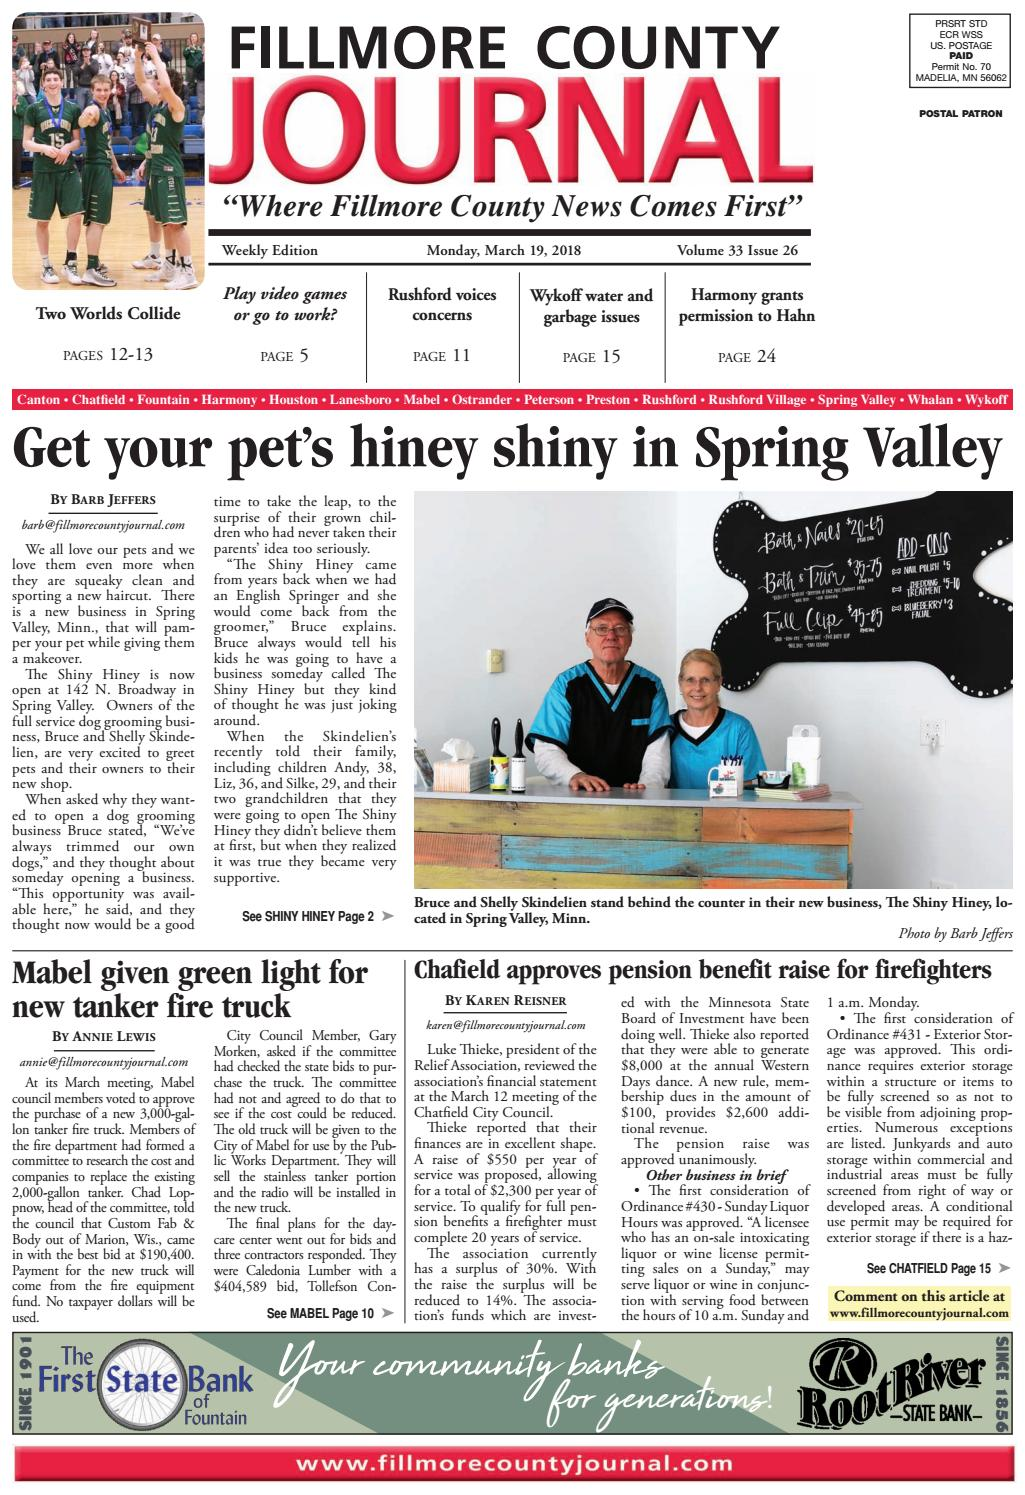 Fillmore County Journal - 3 19 18 by Jason Sethre - issuu